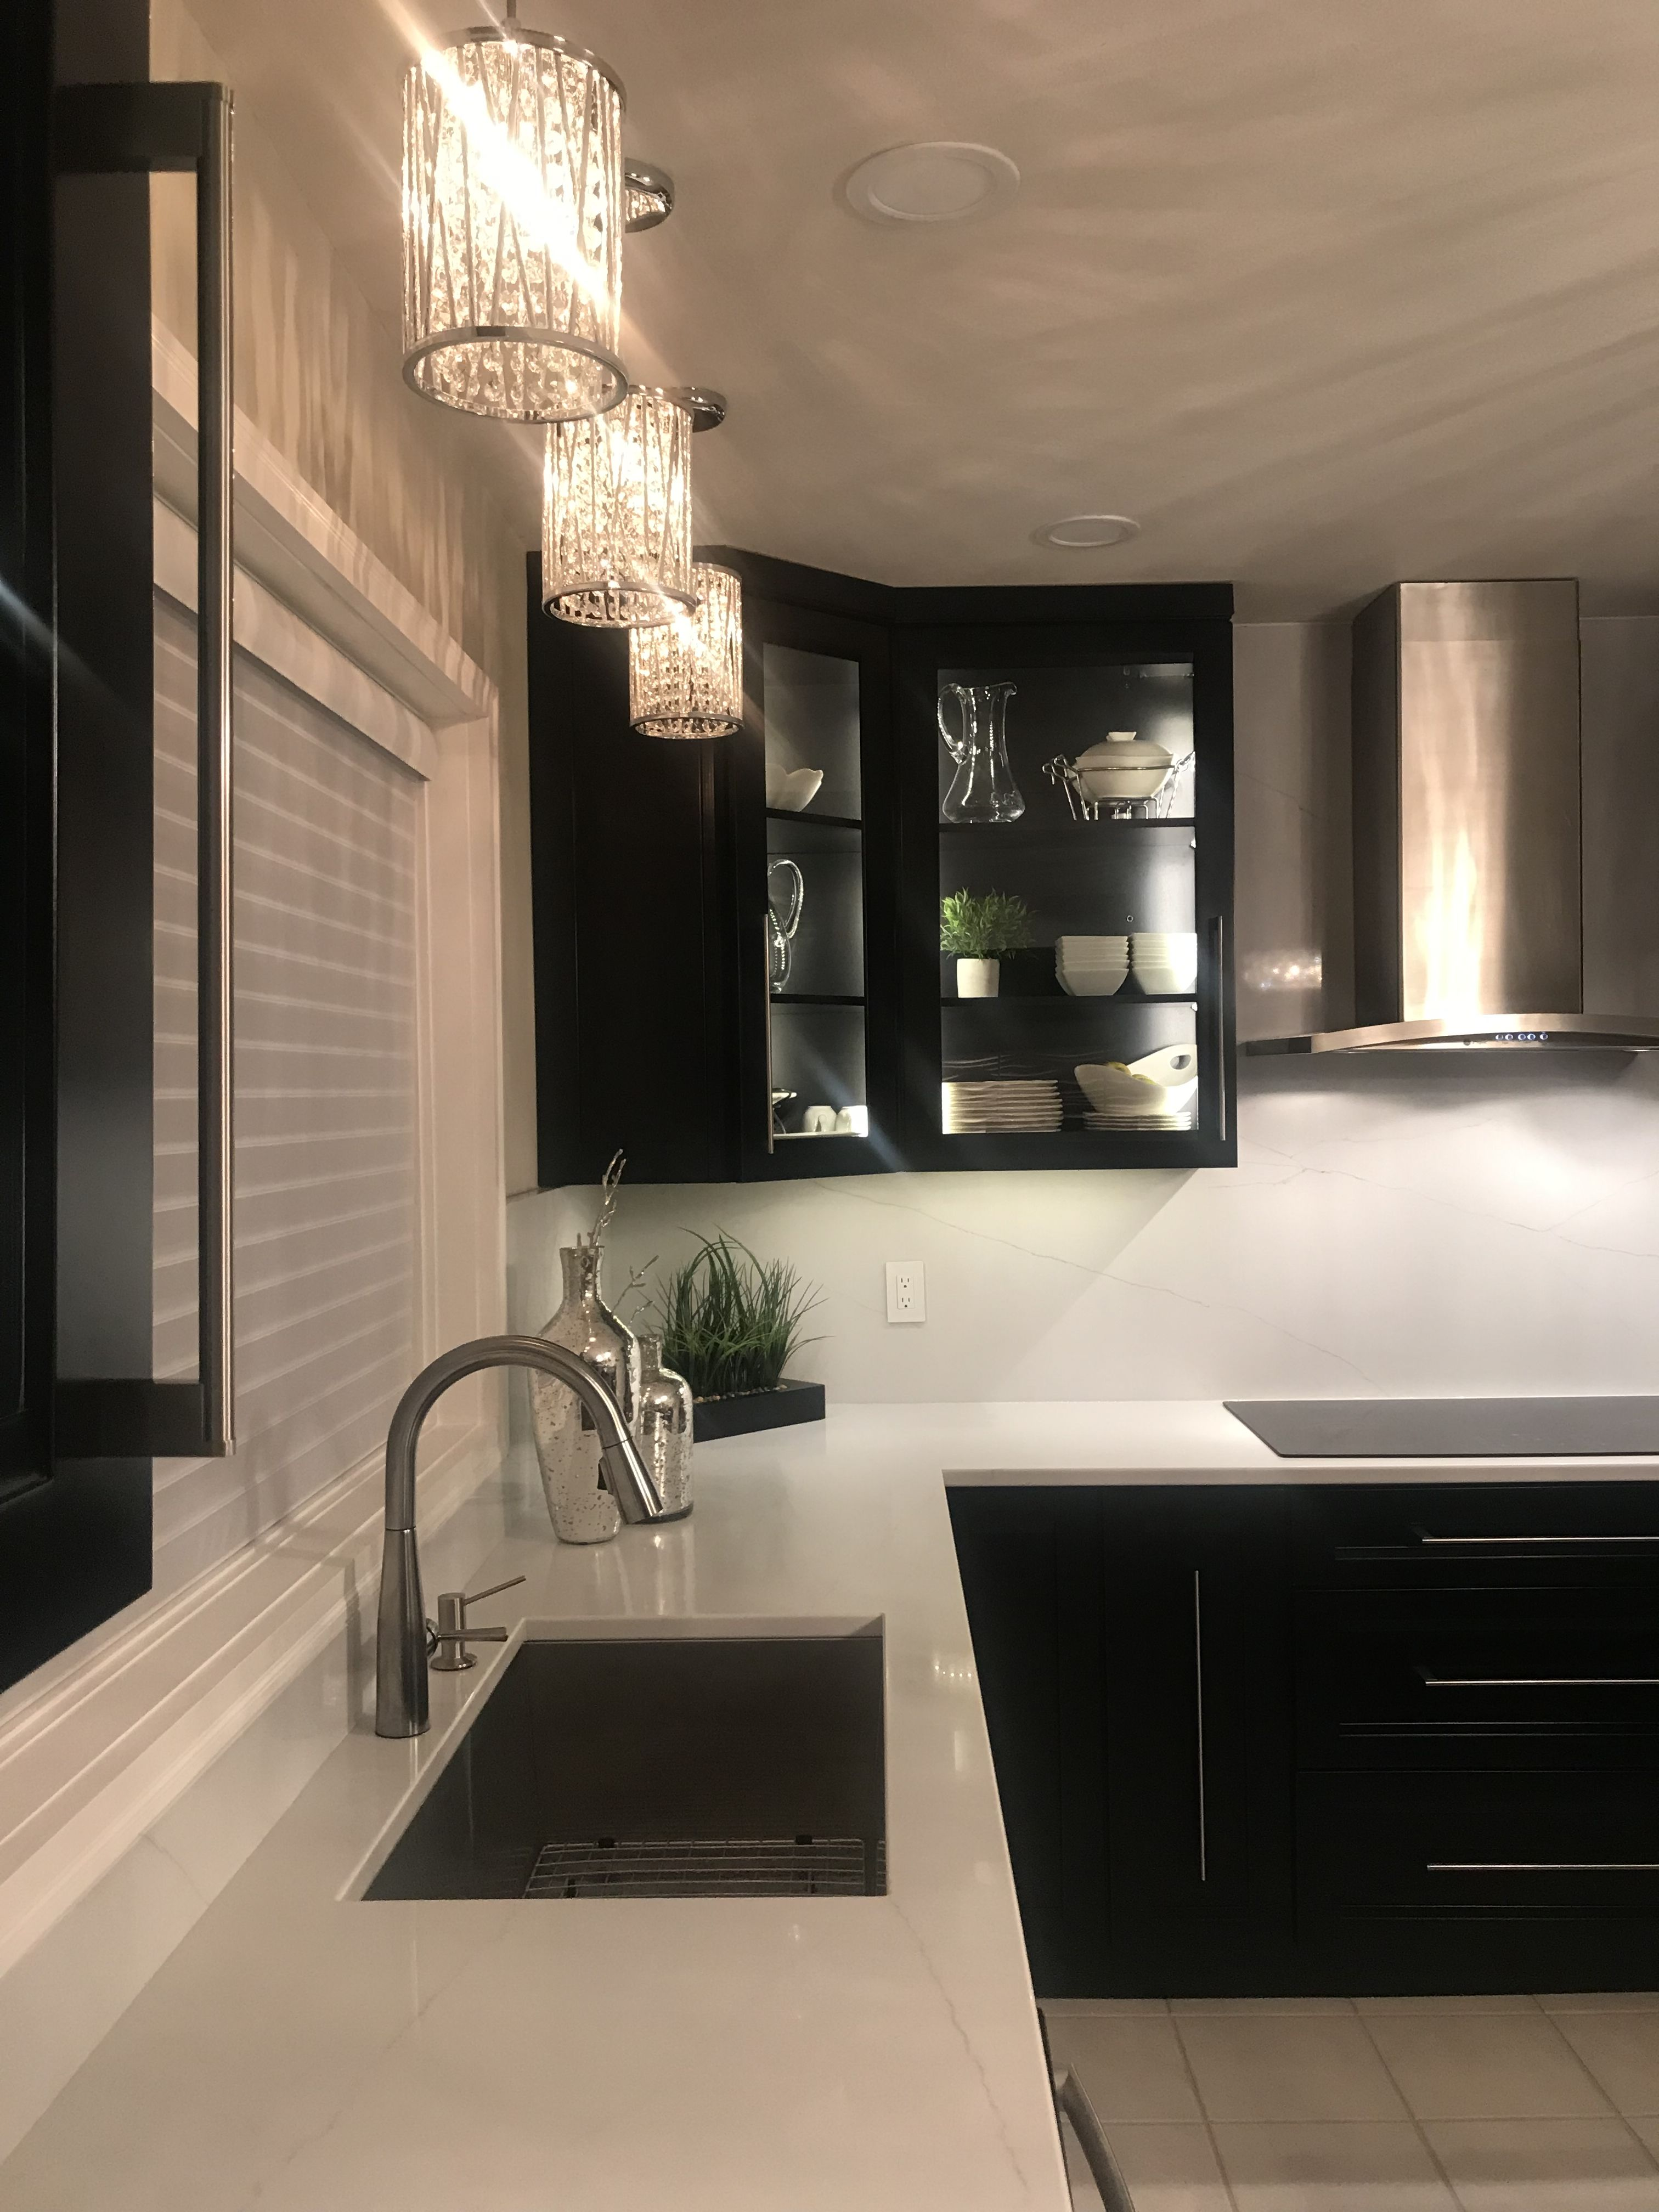 Our Dream Kitchen White Quartz Countertop Countertop Backsplash